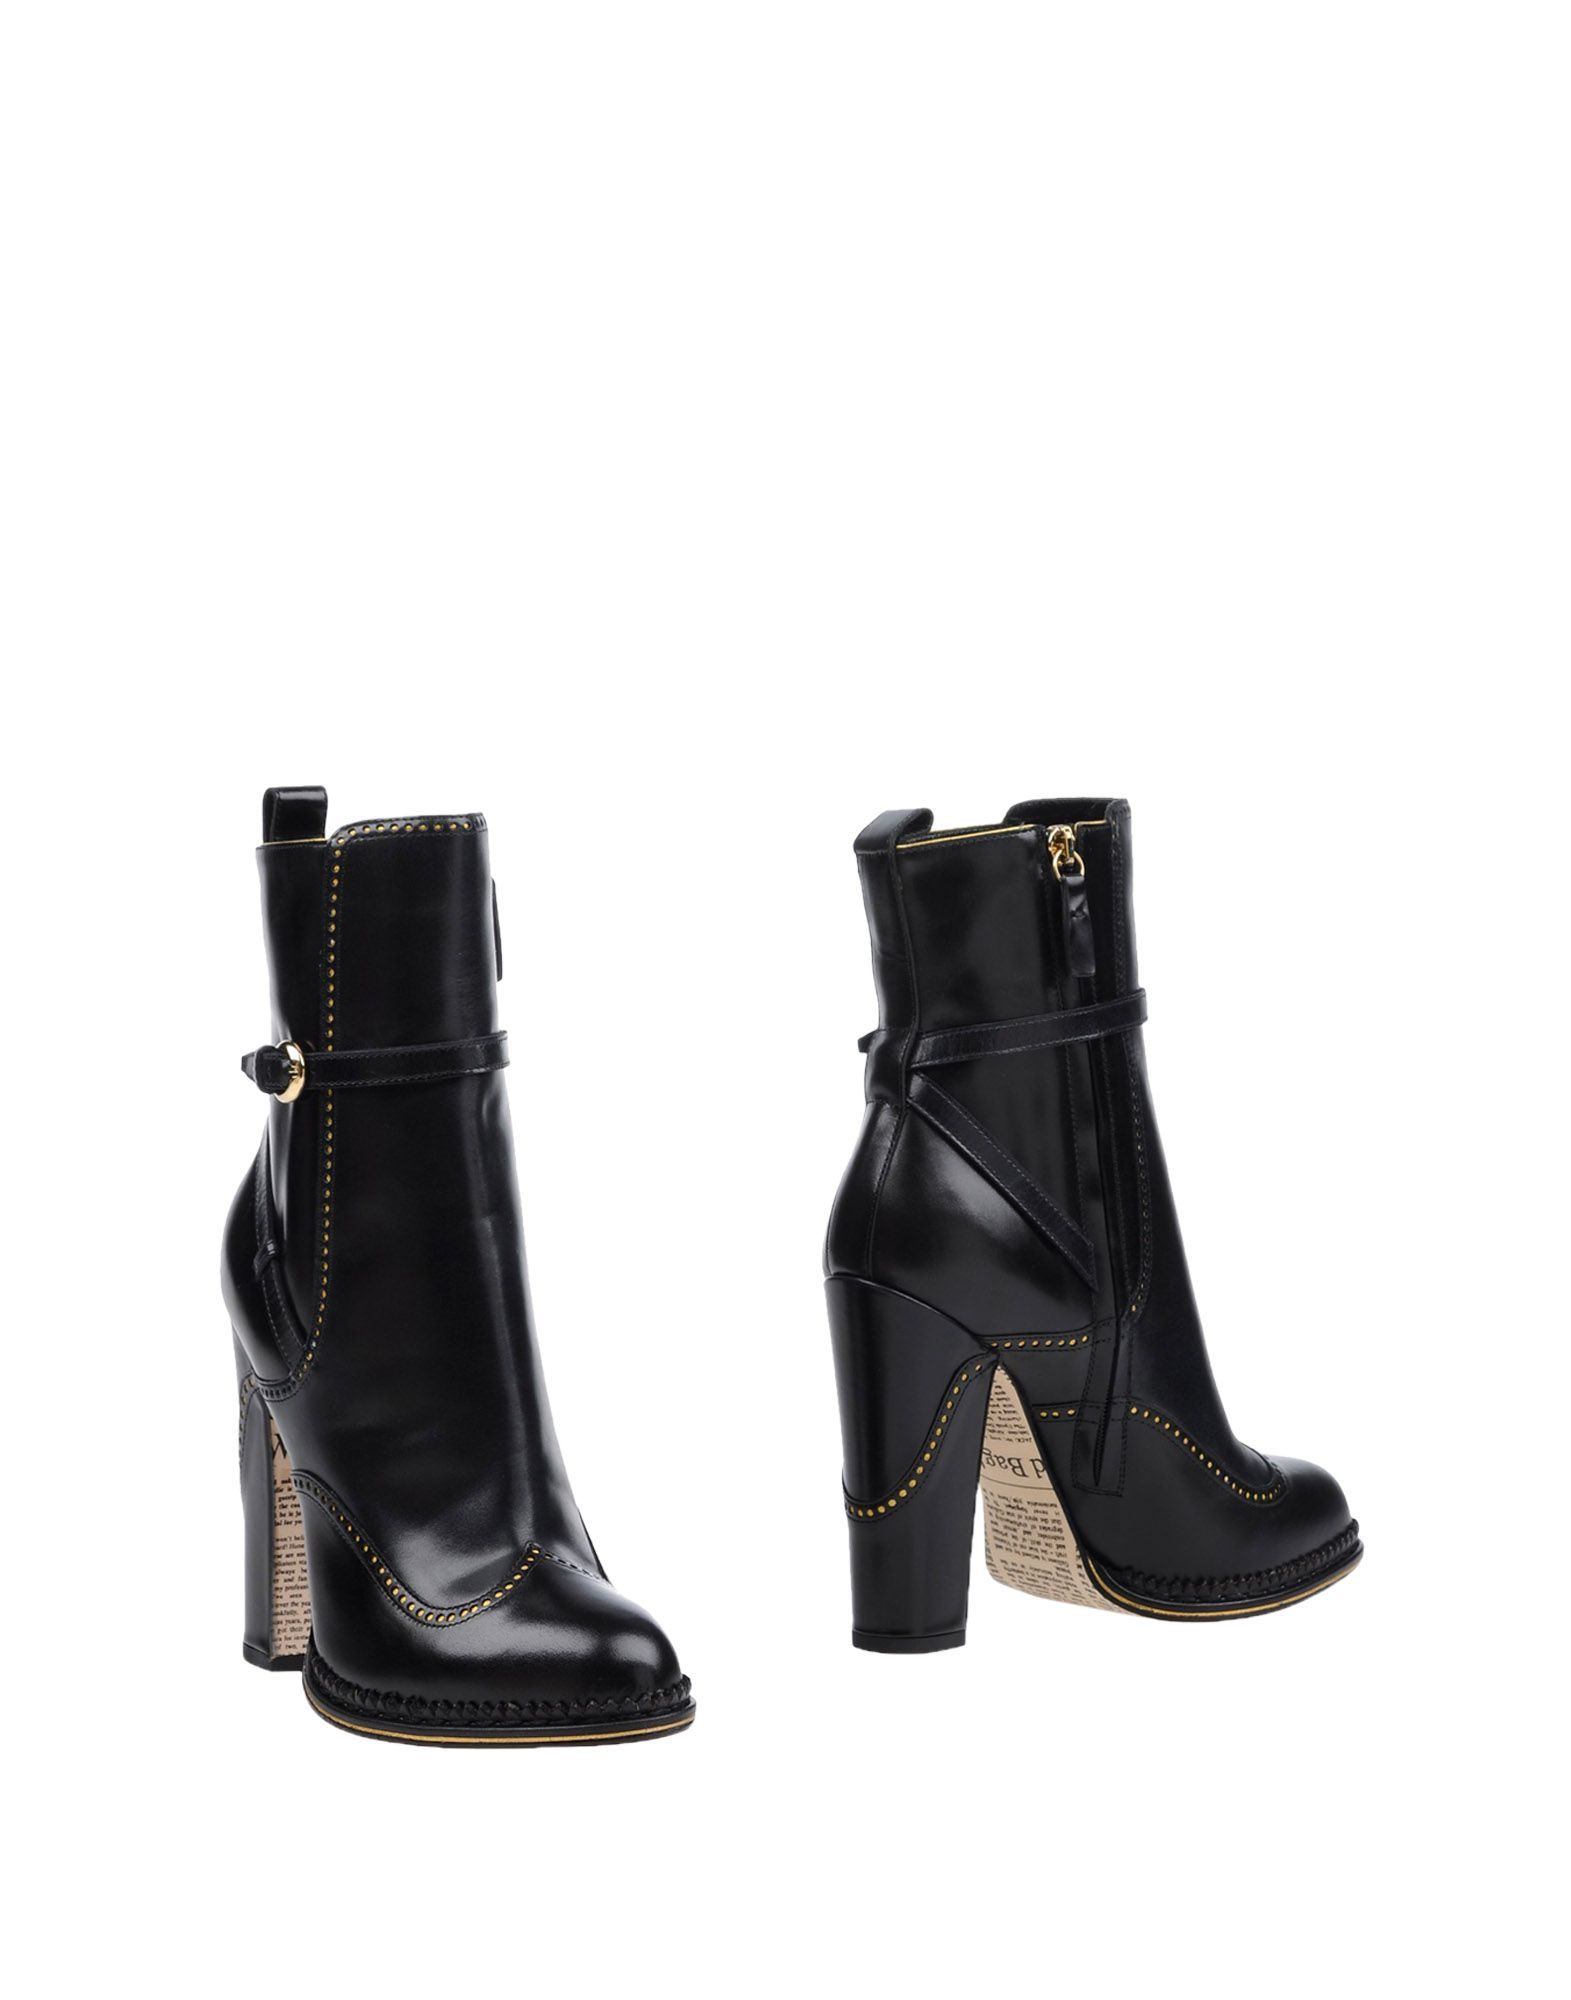 Bottine John Galliano Femme - Bottines John Galliano sur